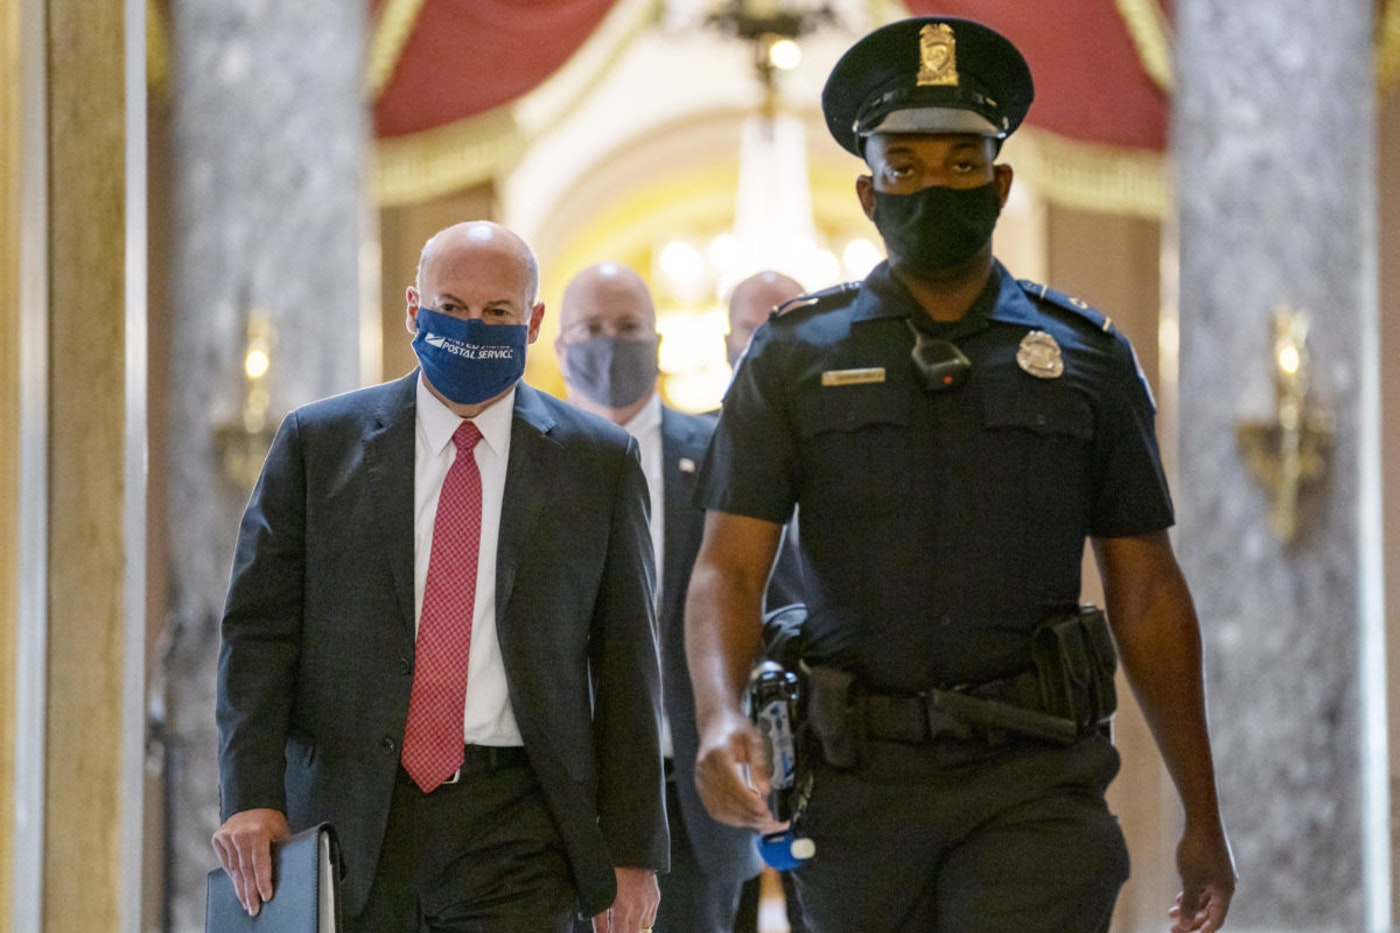 FILE - In this Aug. 5, 2020, file photo Postmaster General Louis DeJoy, left, is escorted to House Speaker Nancy Pelosi's office on Capitol Hill in Washington. The Post Office has lost money for years, though advocates note it's a government service rather than a profit-maximizing business. In June, President Donald Trump appointed DeJoy, a Republican donor and logistics company executive, as the country's new postmaster general and tasked him with trying to make the postal service more profitable.  (AP Photo/Carolyn Kaster, File)